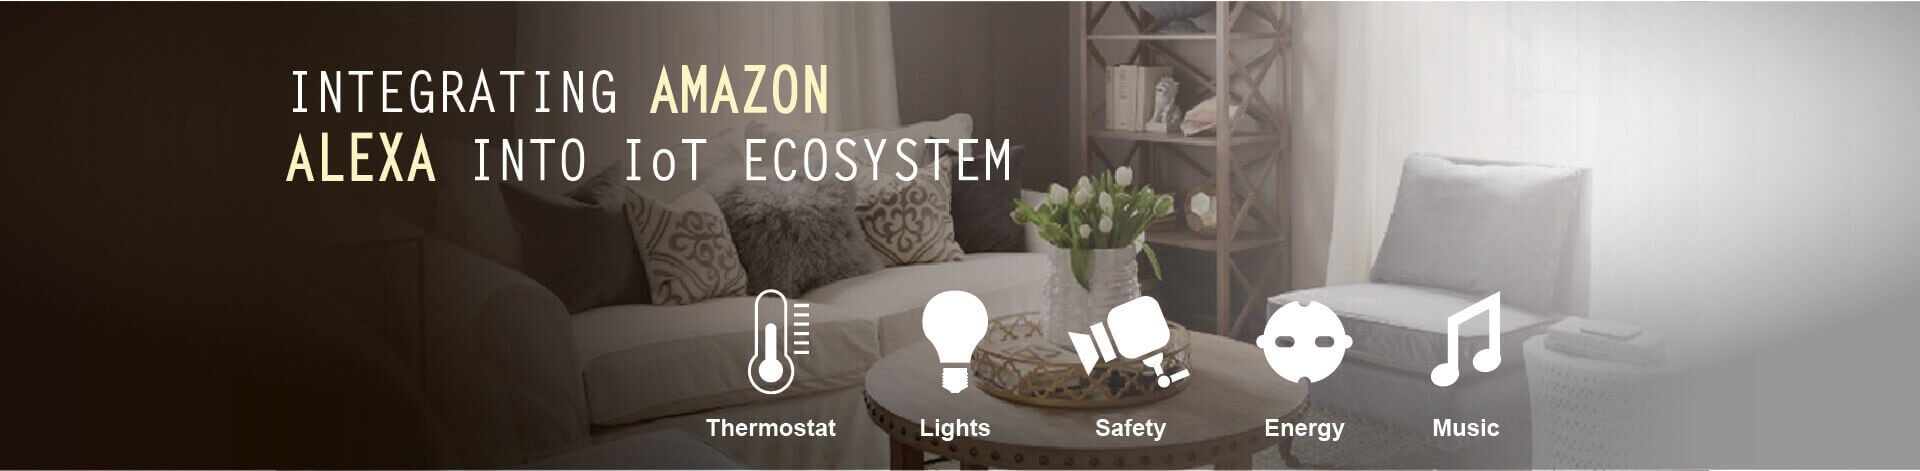 Amazon Alexa Integrated with IoT Ecosystem Service